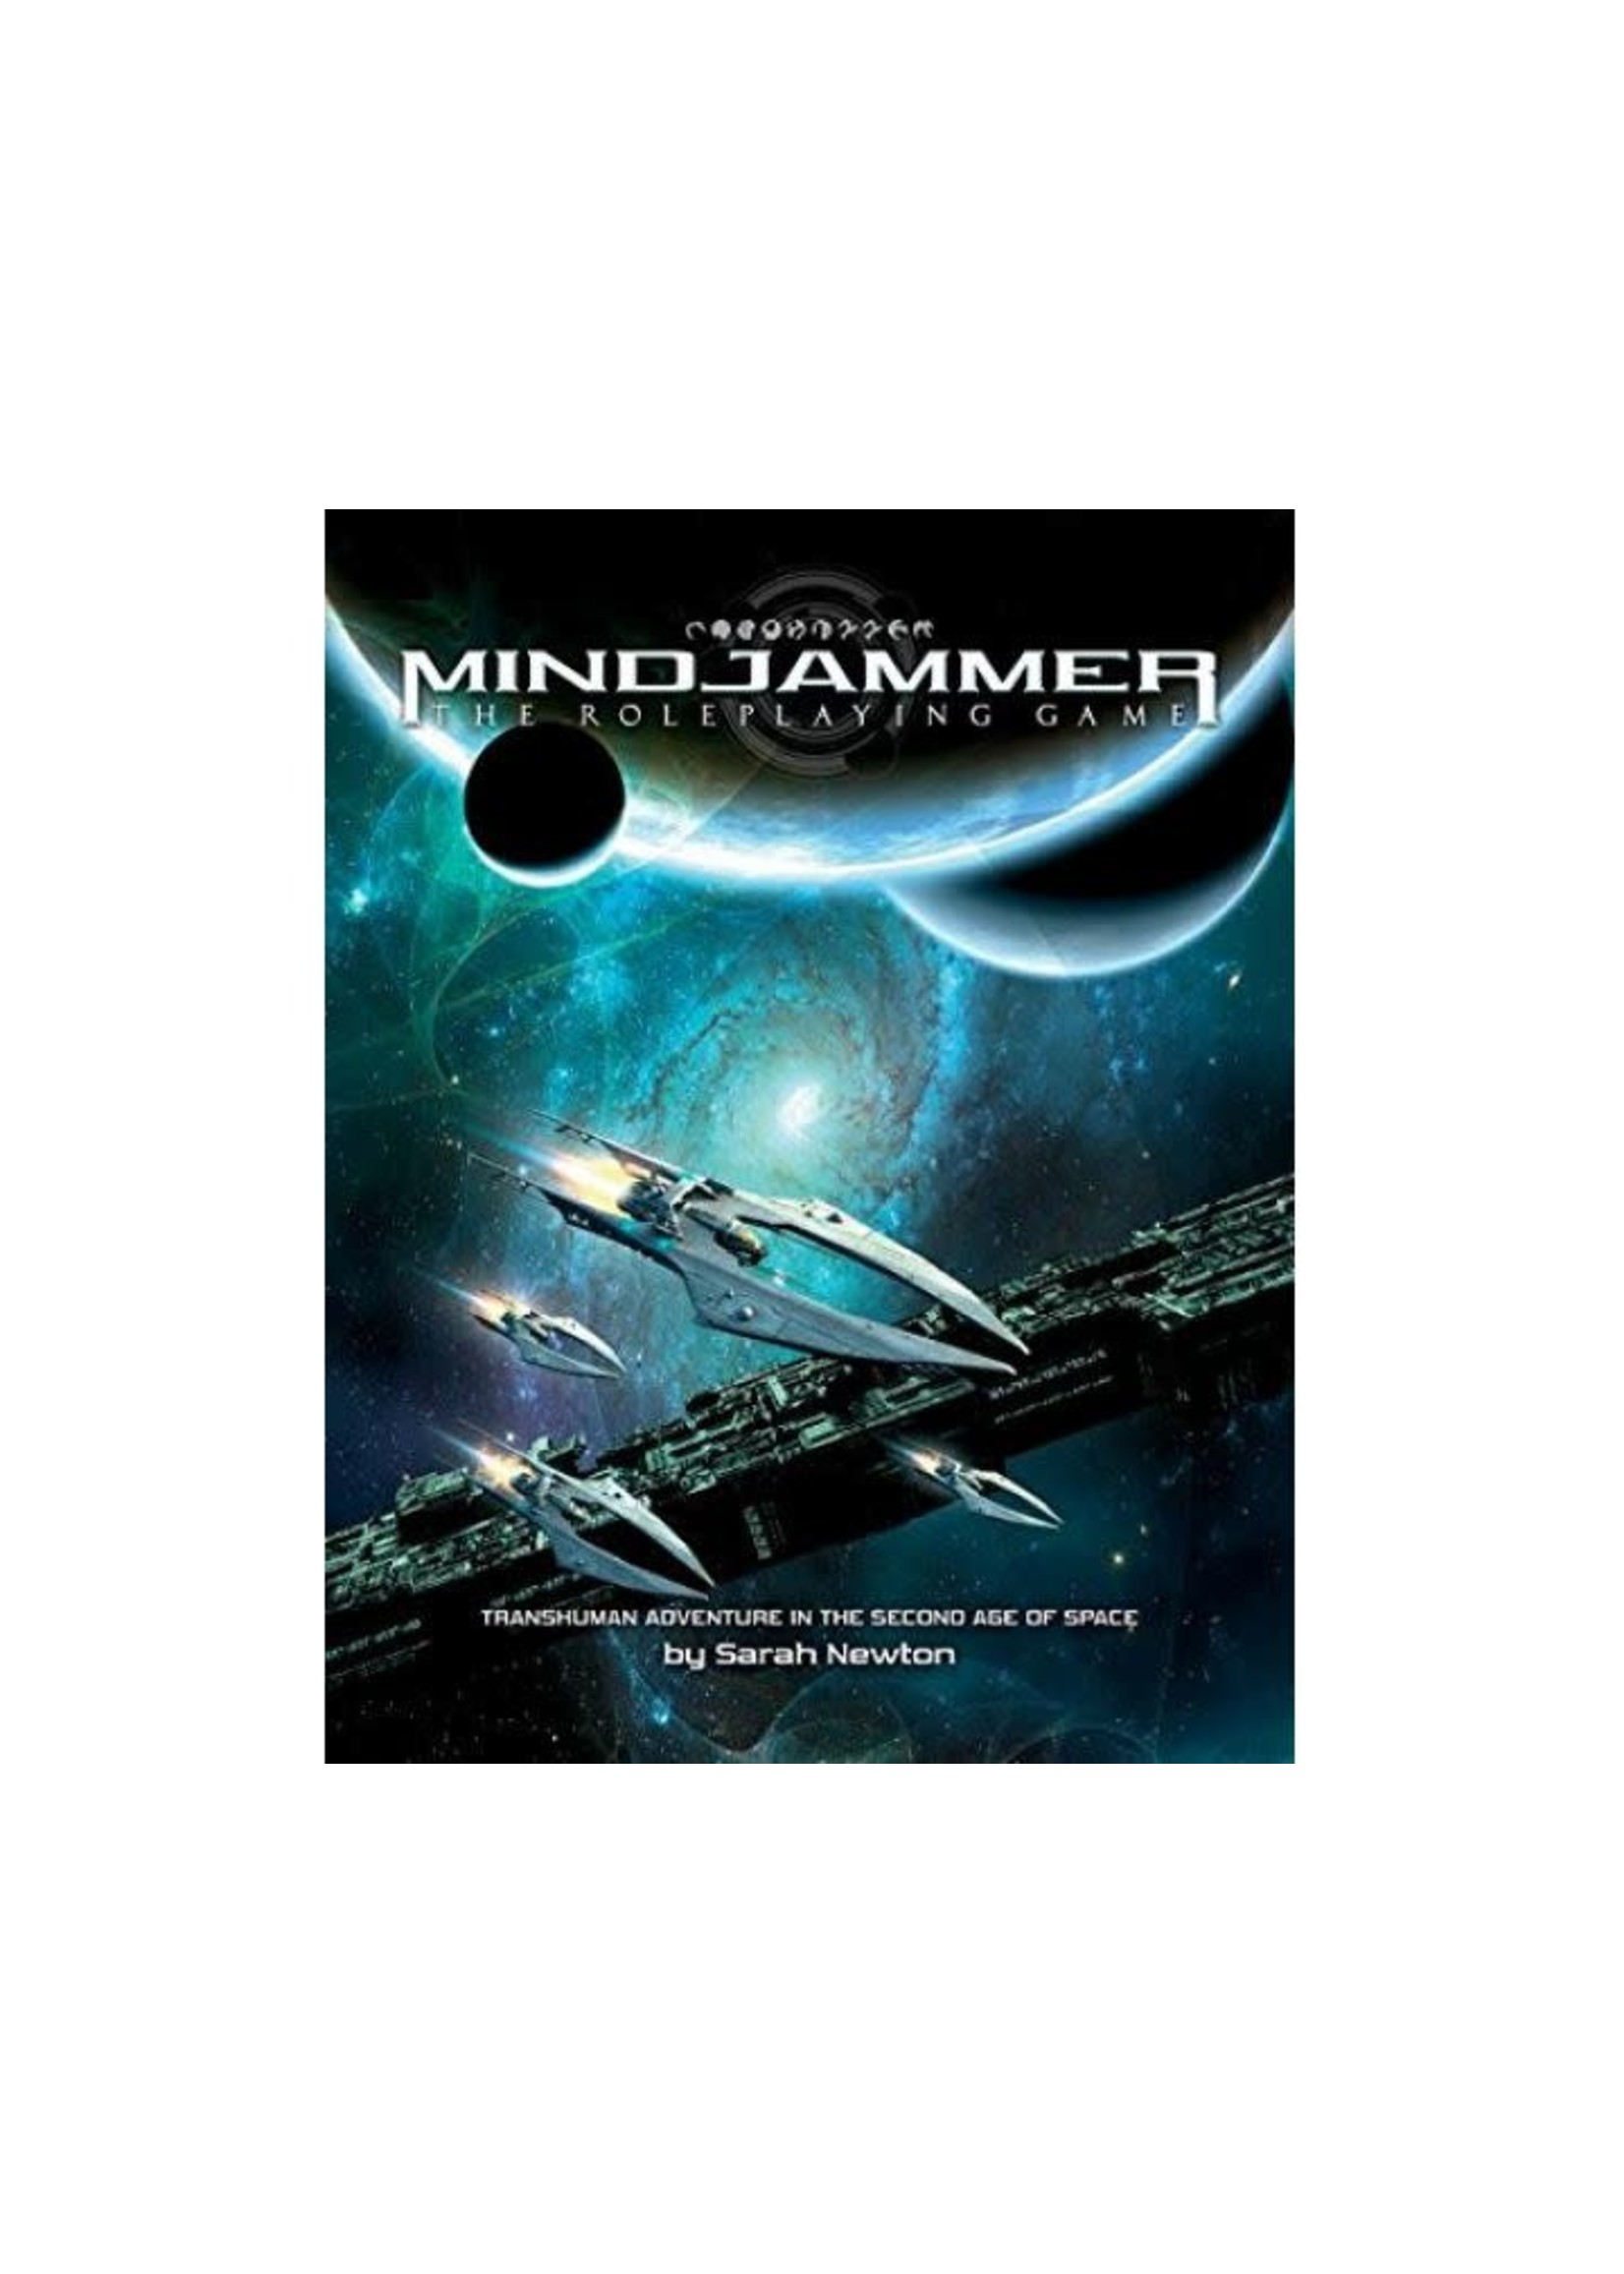 Mindjammer - The Roleplaying Game